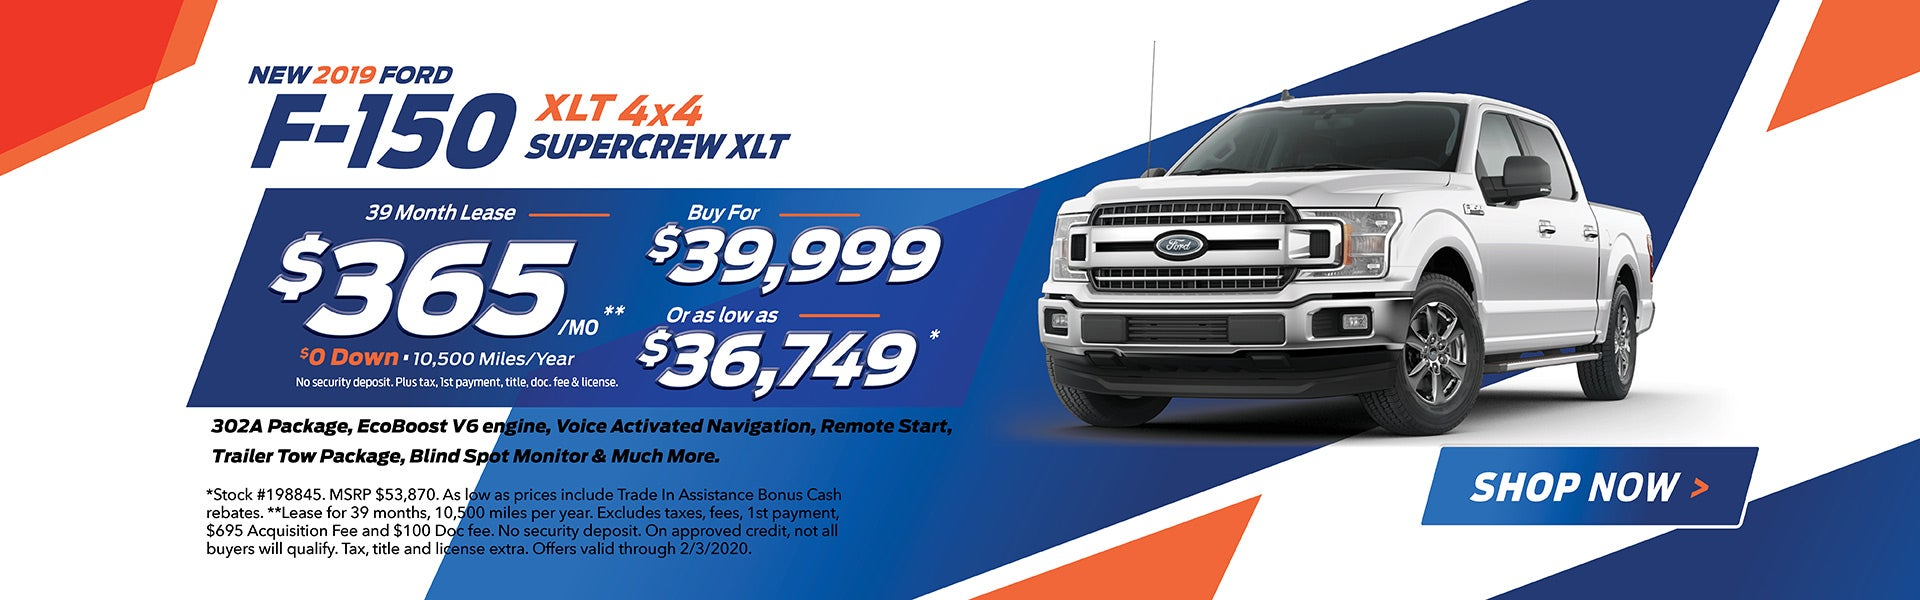 Twin Cities Ford Dealers >> Ford Dealer In Eden Prairie Mn Used Cars Eden Prairie